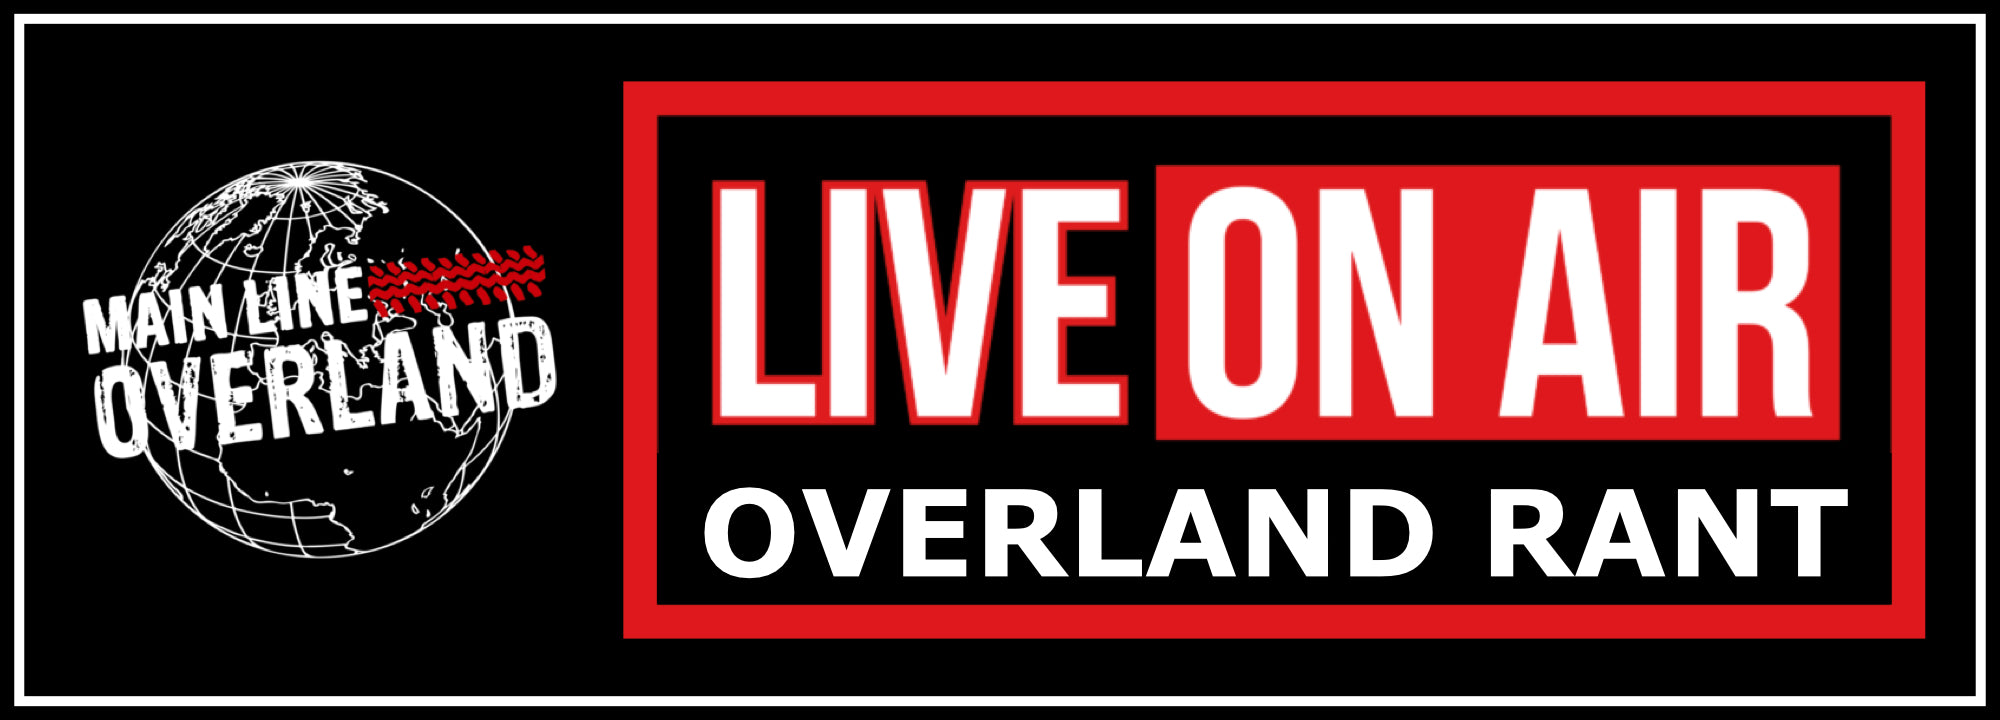 Overland Rant Sale